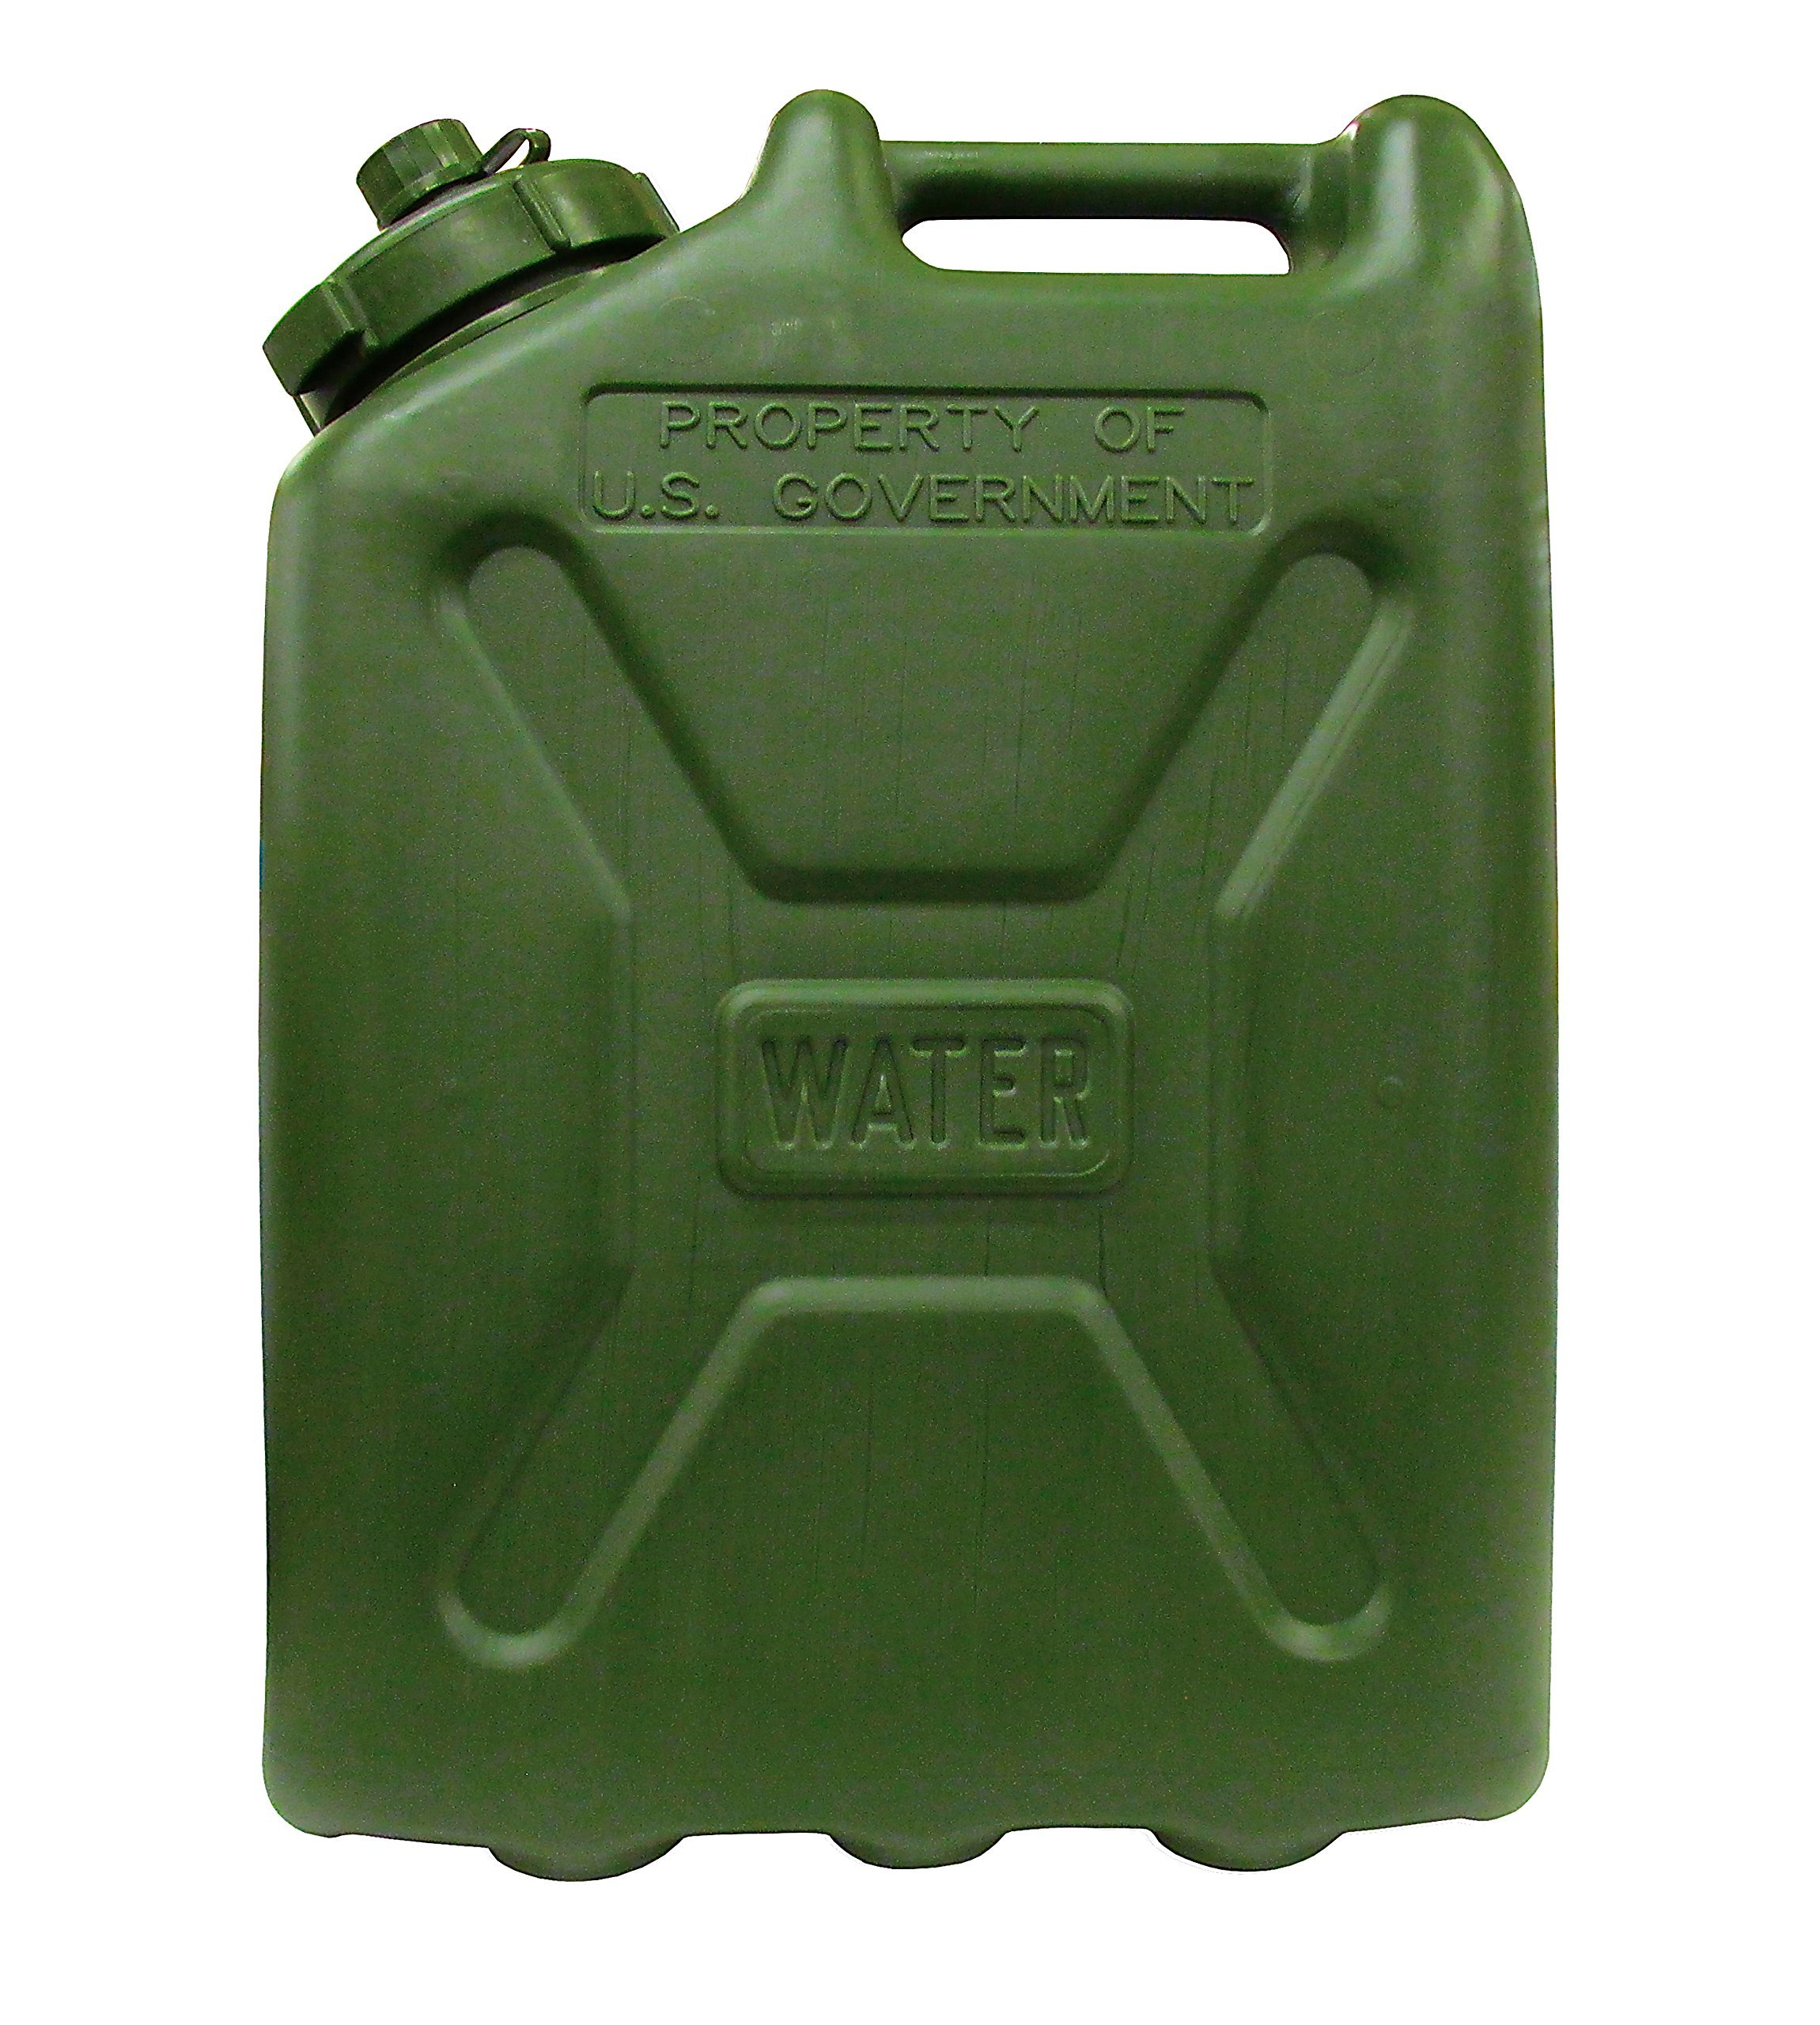 USGI Plastic Water Can, 5 Gallon, Green by Skilcraft